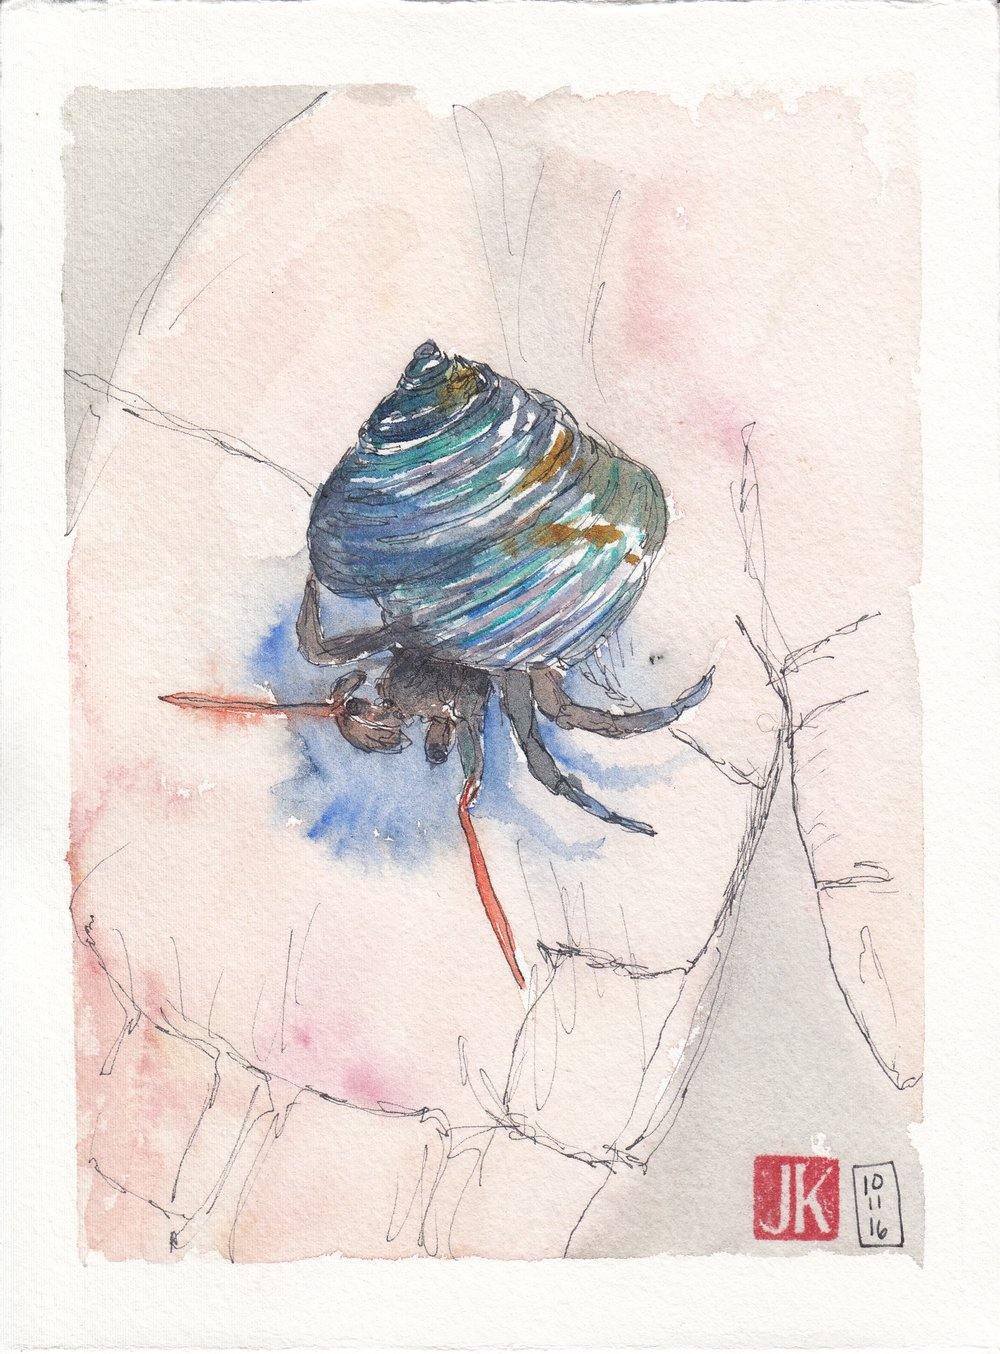 A hermit crab with a beautiful iridescent shell